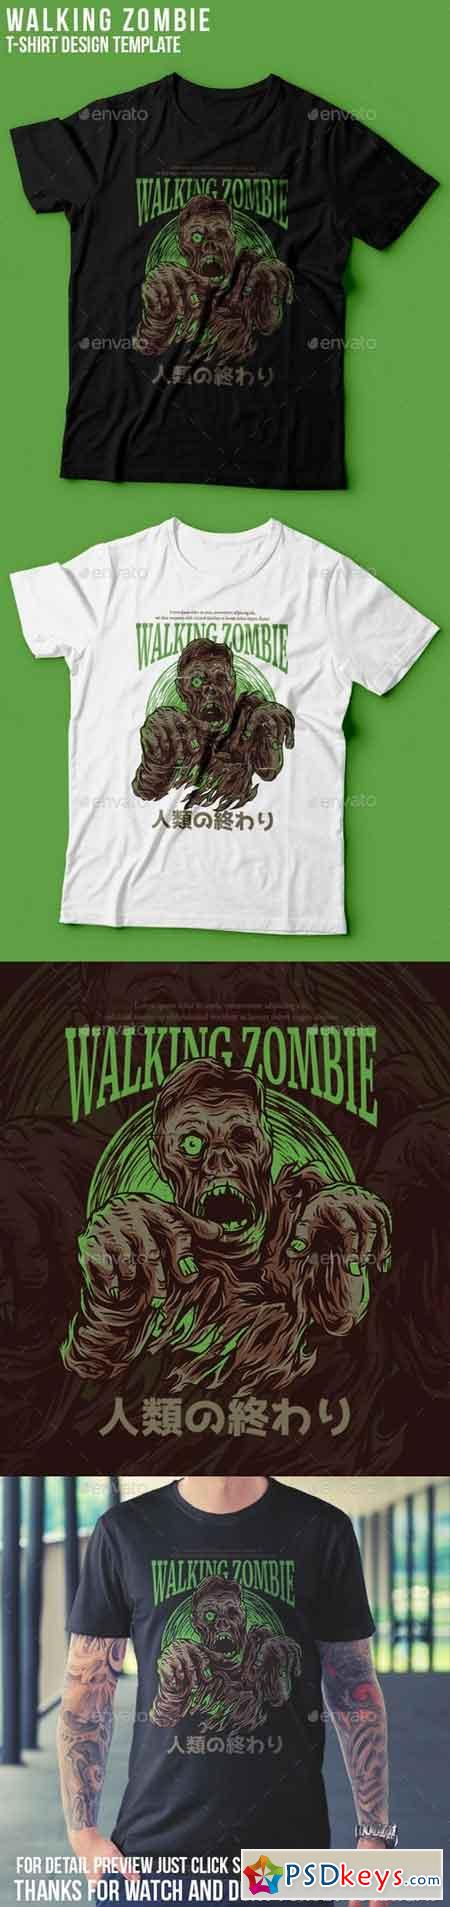 Walking Zombie T-Shirt Design 22801465